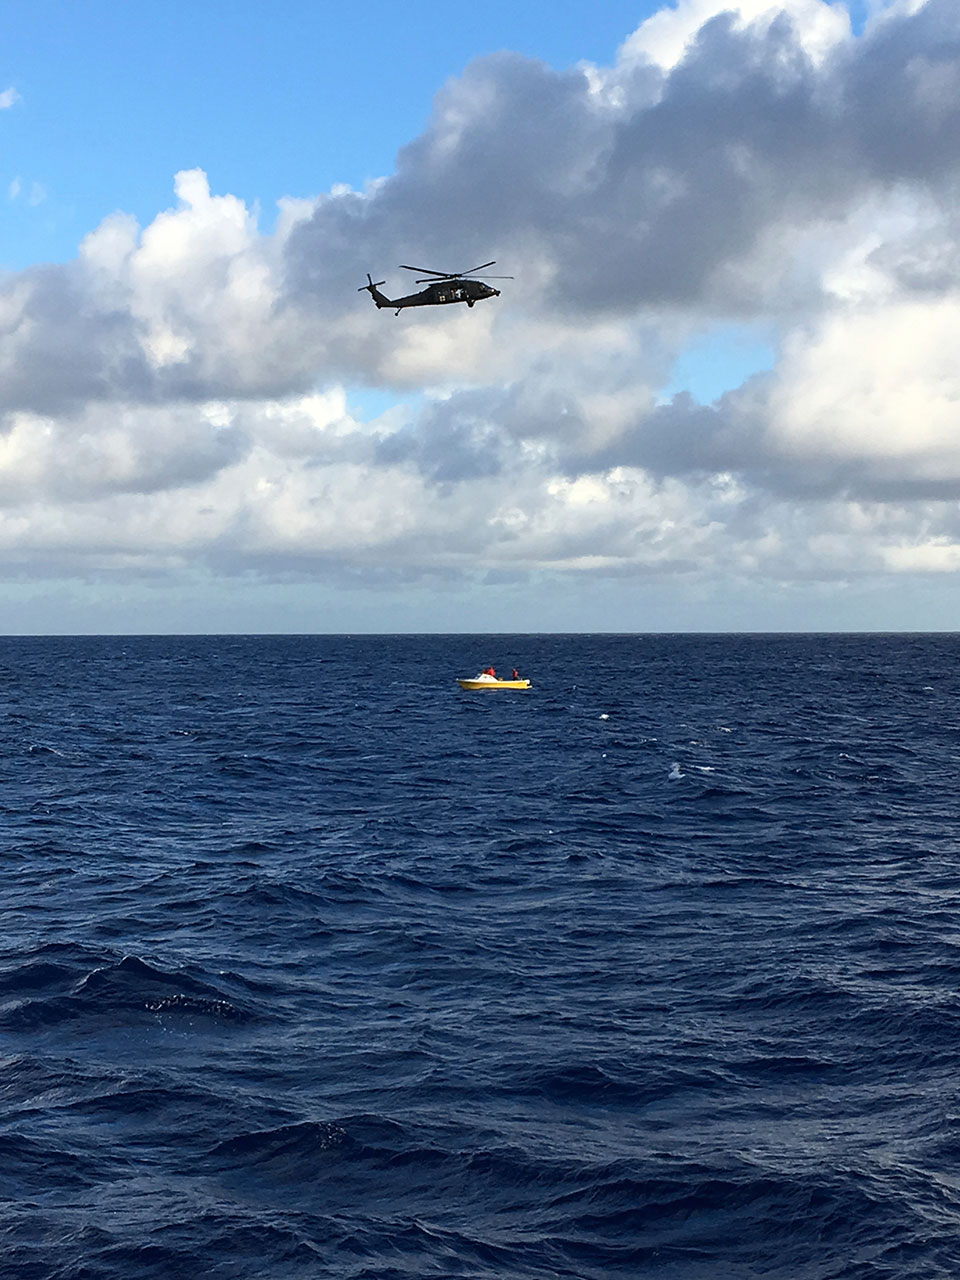 5 missing after Army helicopter crashes in ocean off Hawaii